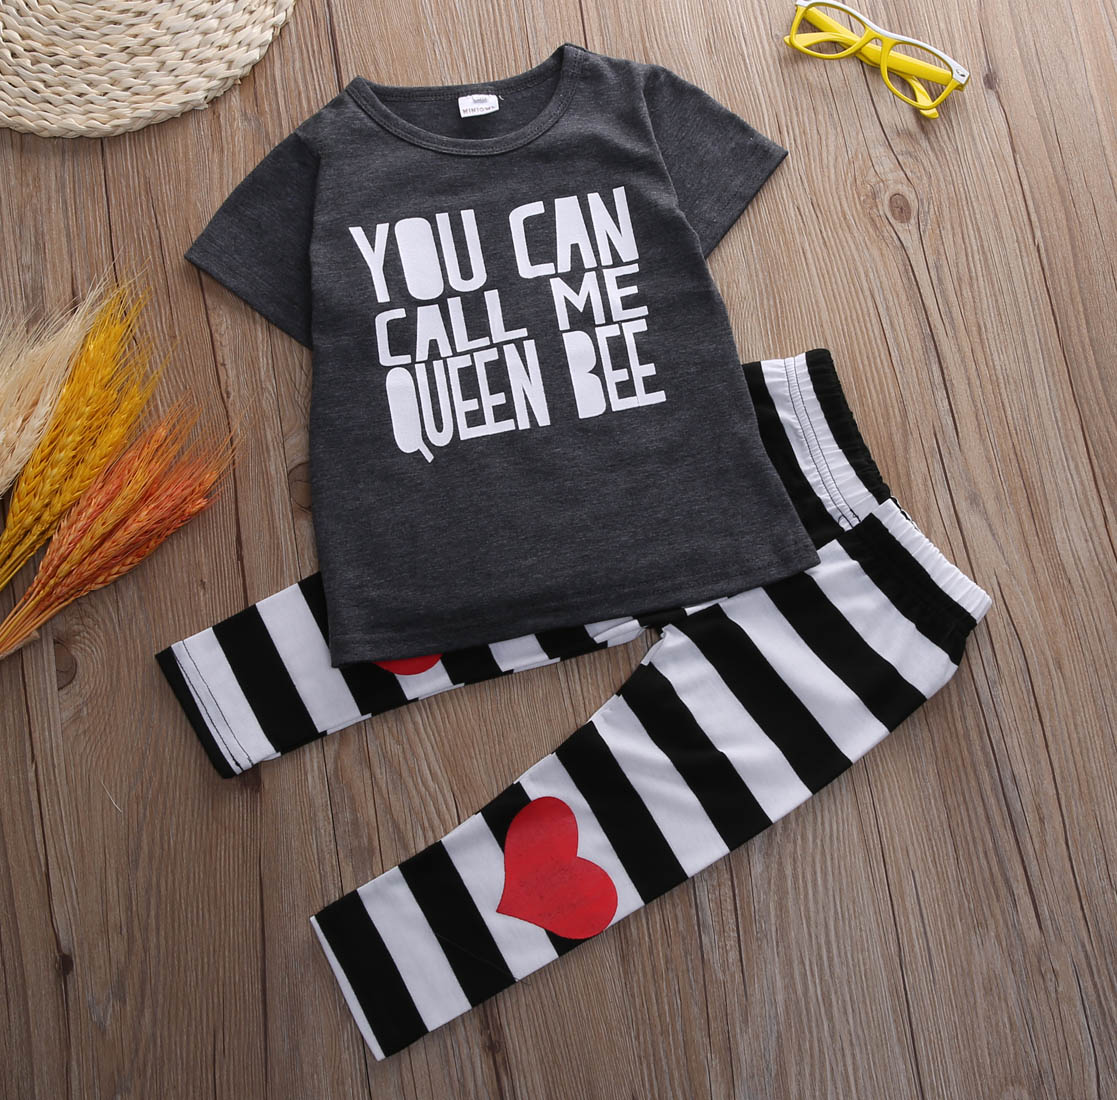 Baby boy Girl clothes set Toddler Kids Baby Girls Print Outfit Clothes T-shirt Tops+Long Strip Pants 2pcs children clothes set flower sleeveless vest t shirt tops vest shorts pants outfit girl clothes set 2pcs baby children girls kids clothing bow knot